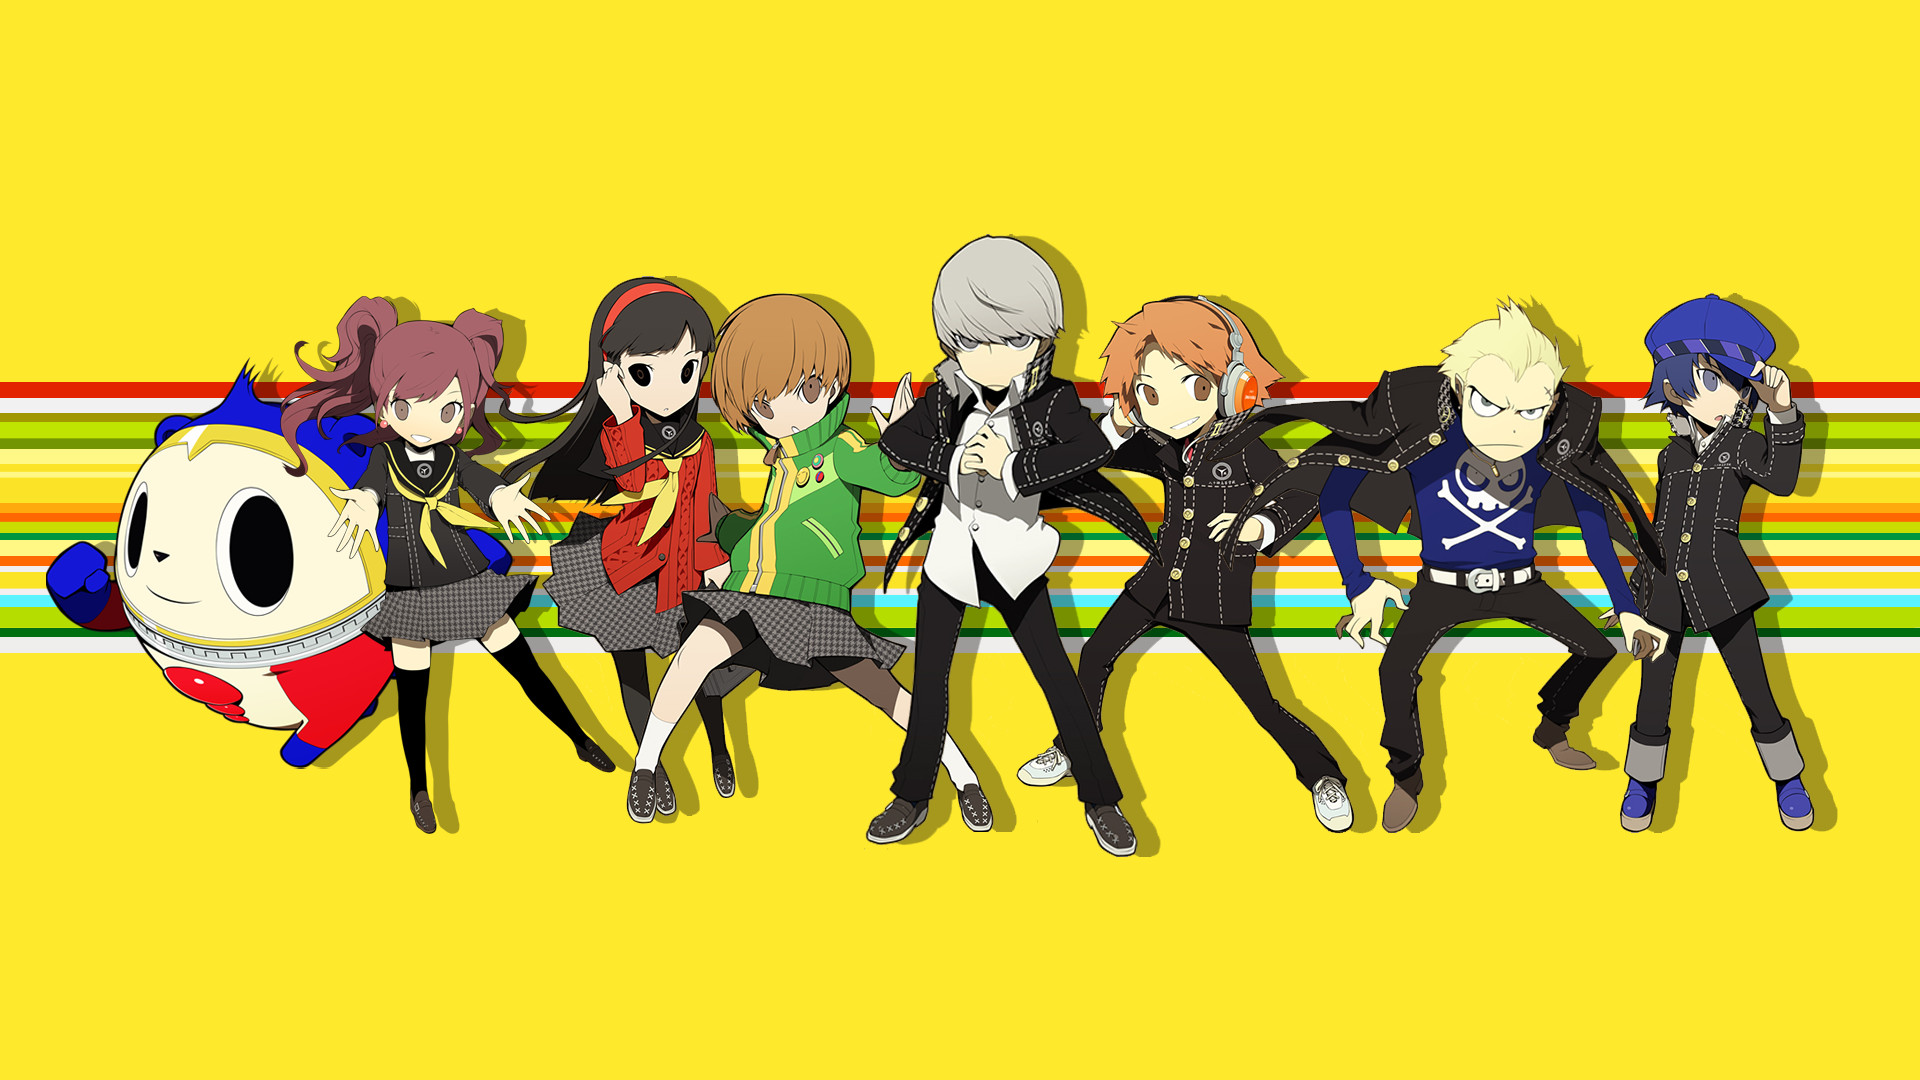 A Persona 4 wallpaper I made using the PQ chibis …